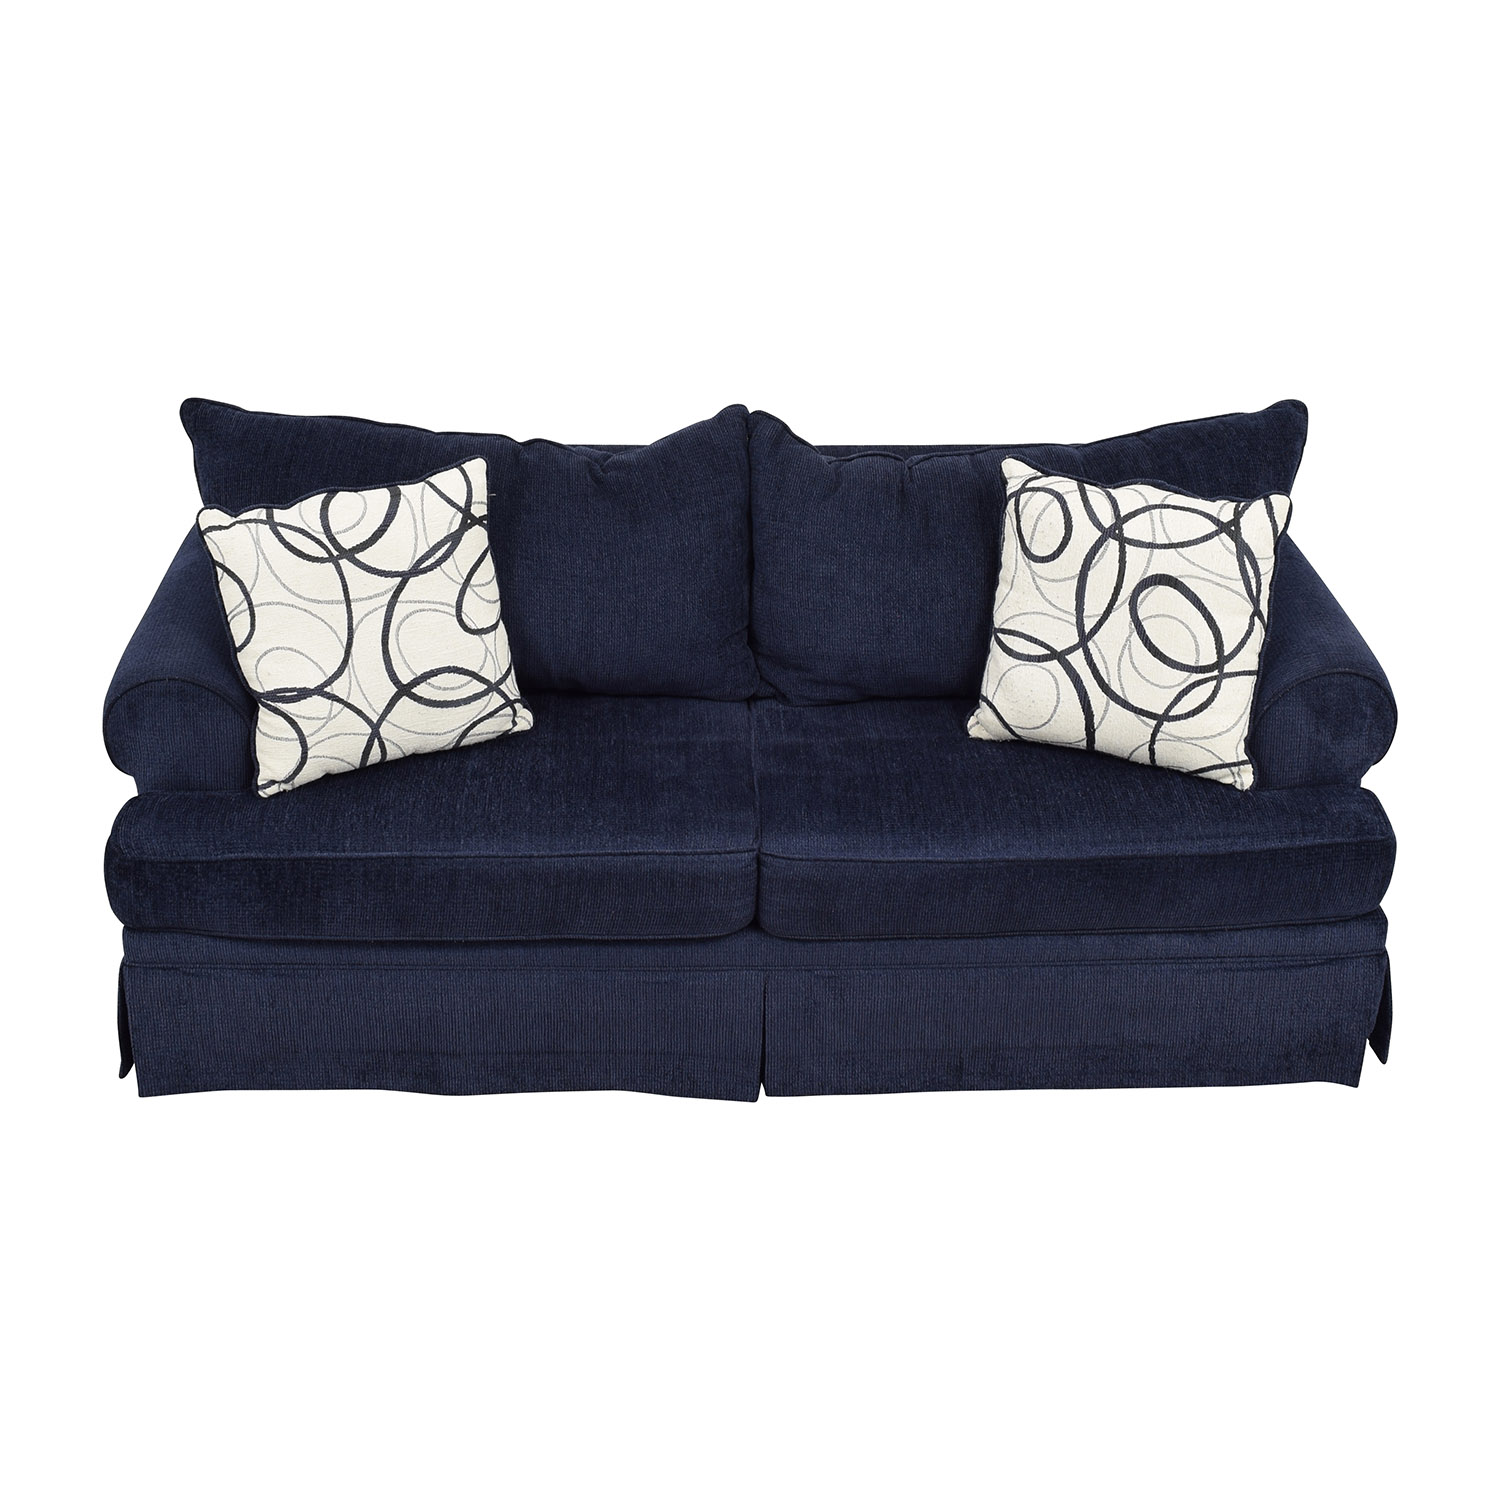 shop Bobs Furniture Bobs Furniture Deep Blue Sofa online